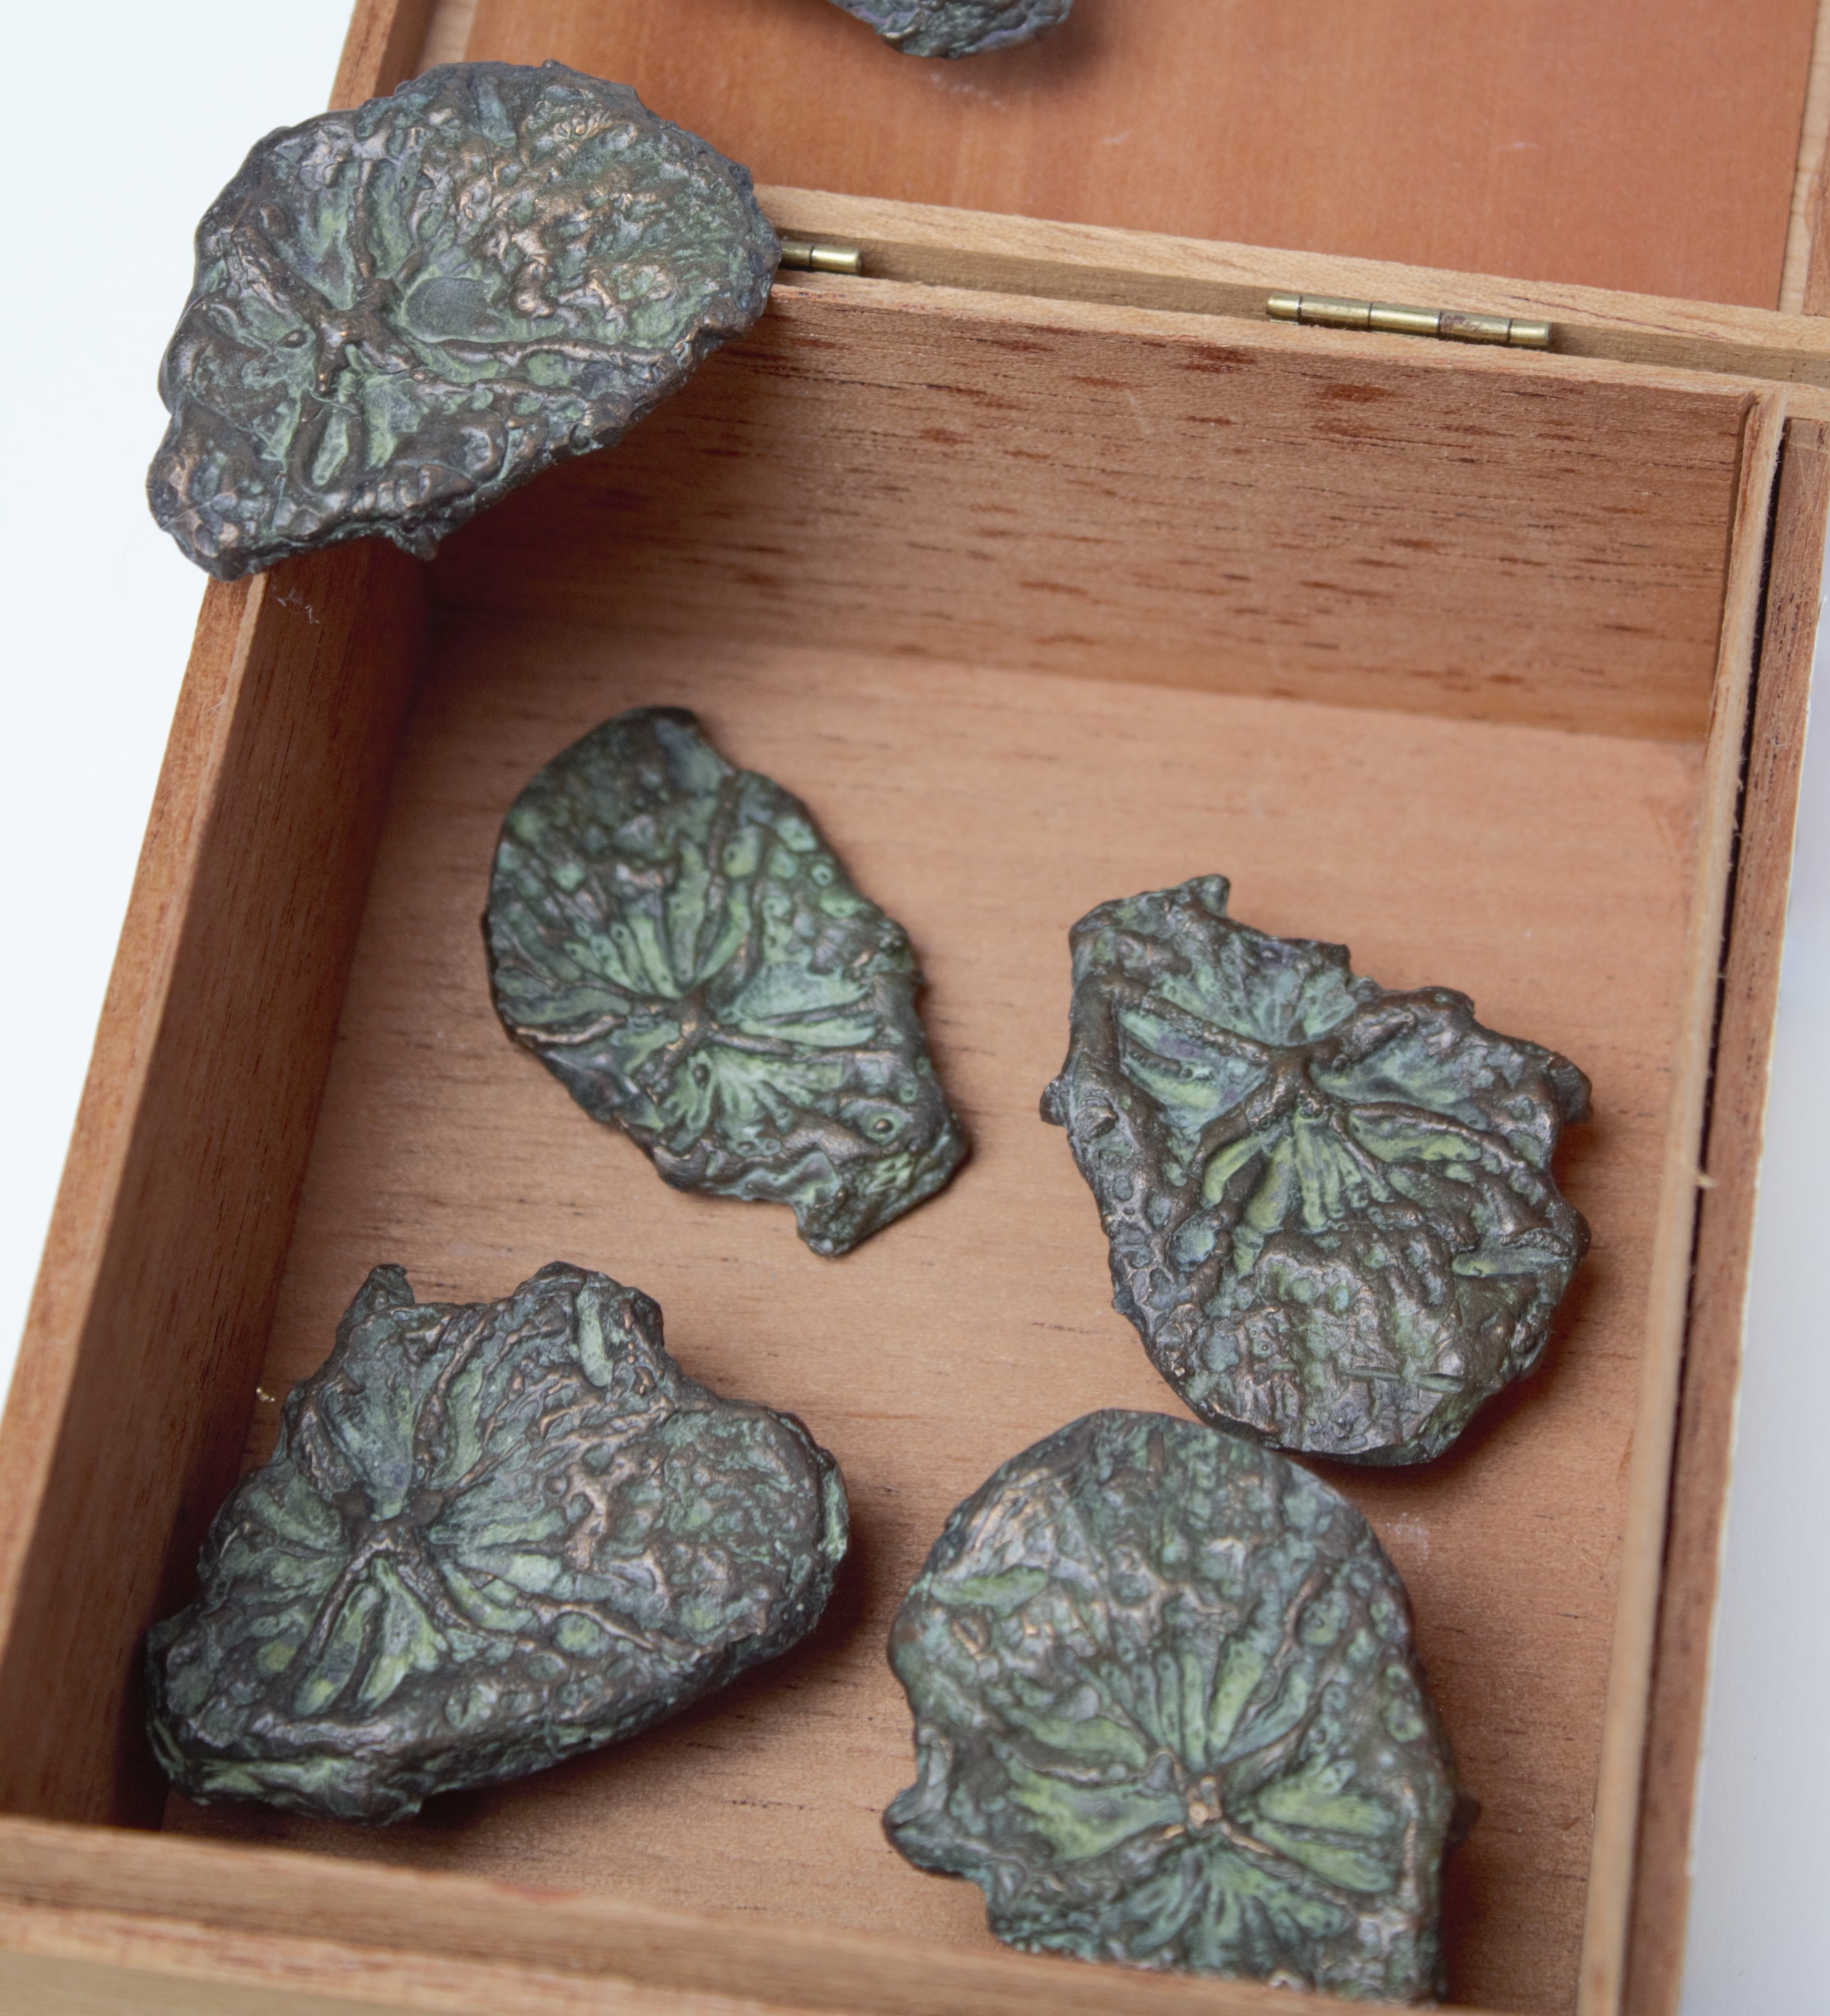 Moulds of dark green leaves placed in an open square box